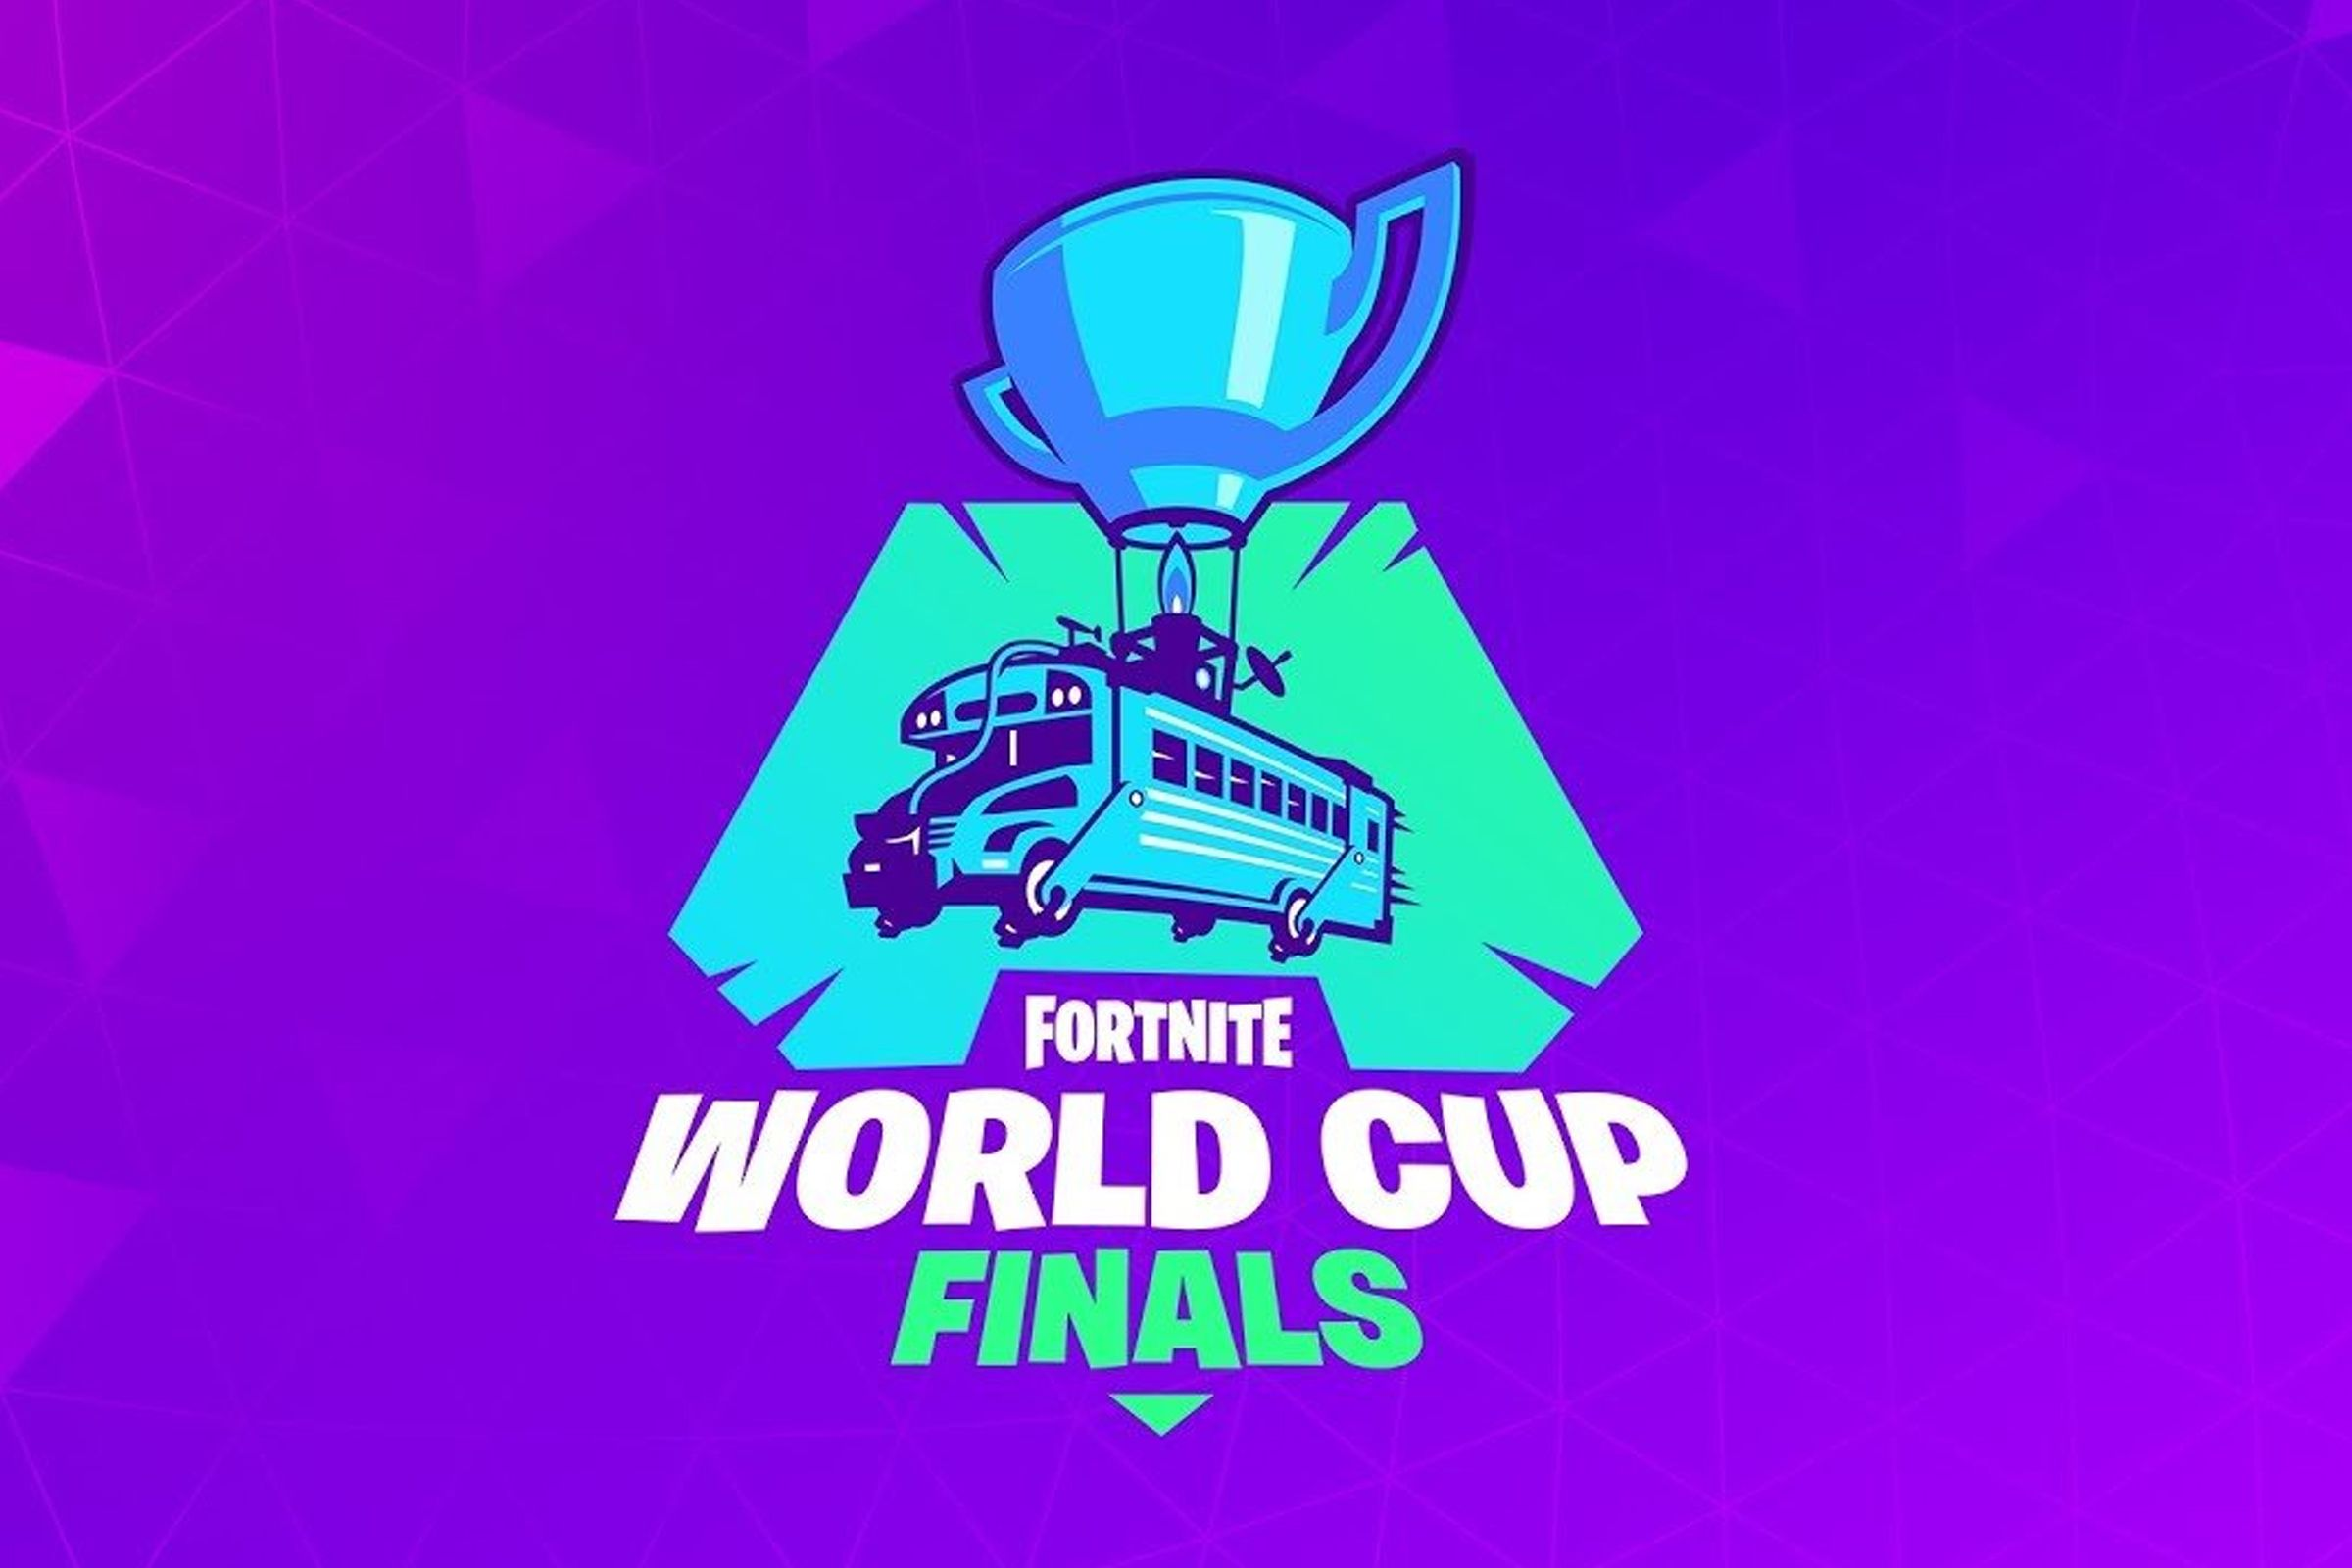 vod-fortnite-world-cup-finals